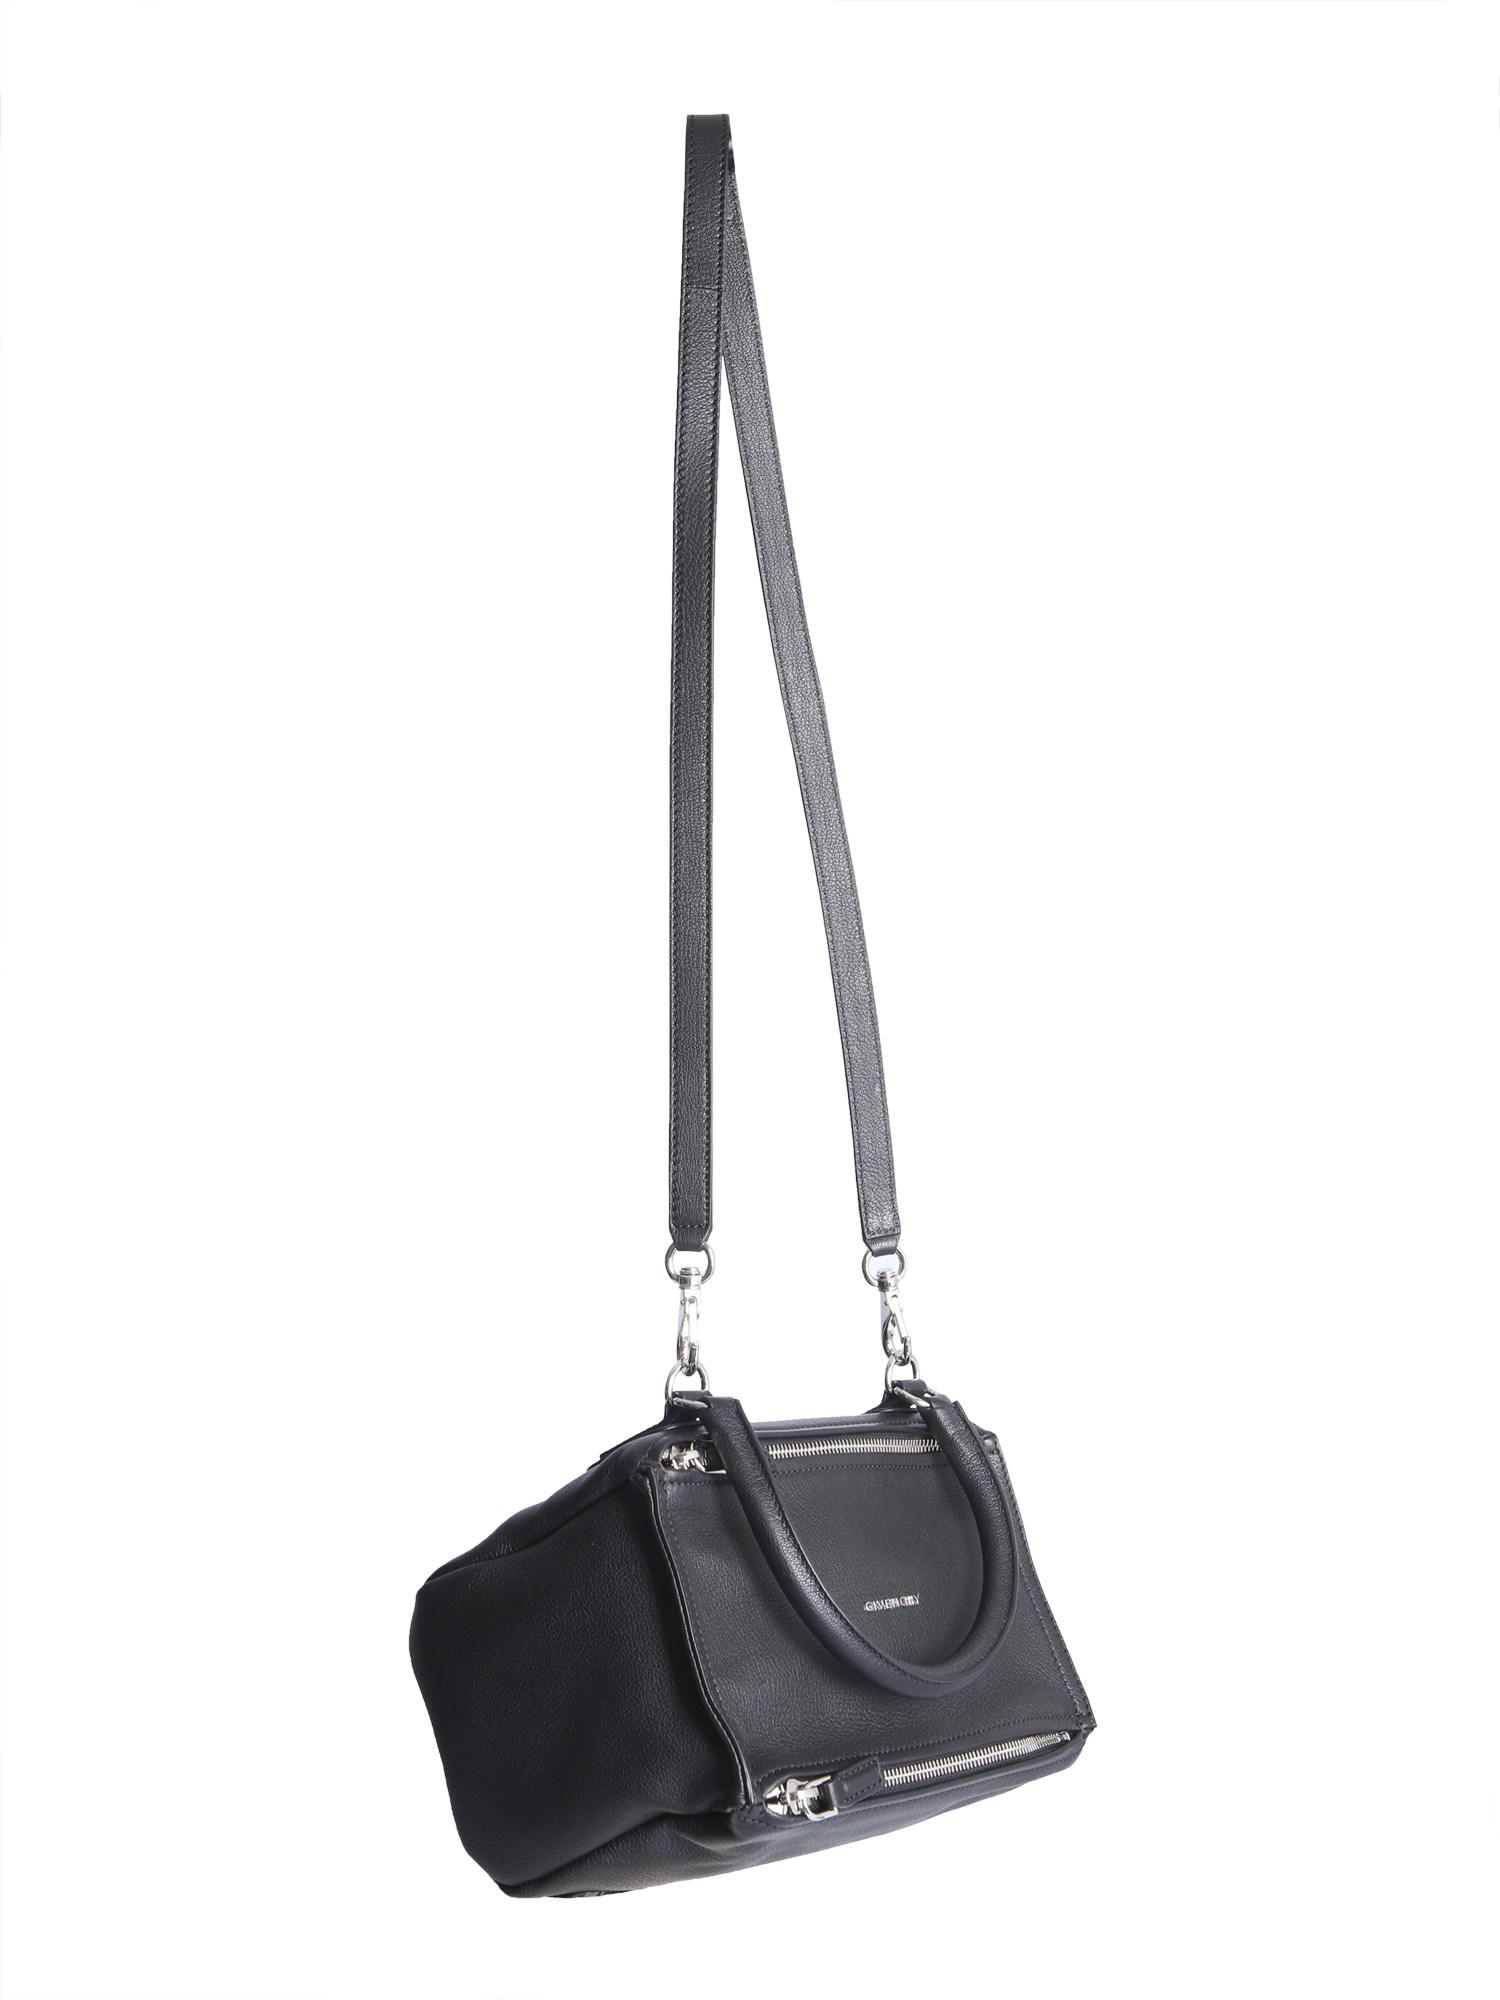 7f6e1487484d Givenchy - Black Small Pandora Bag In Hammered Leather - Lyst. View  fullscreen